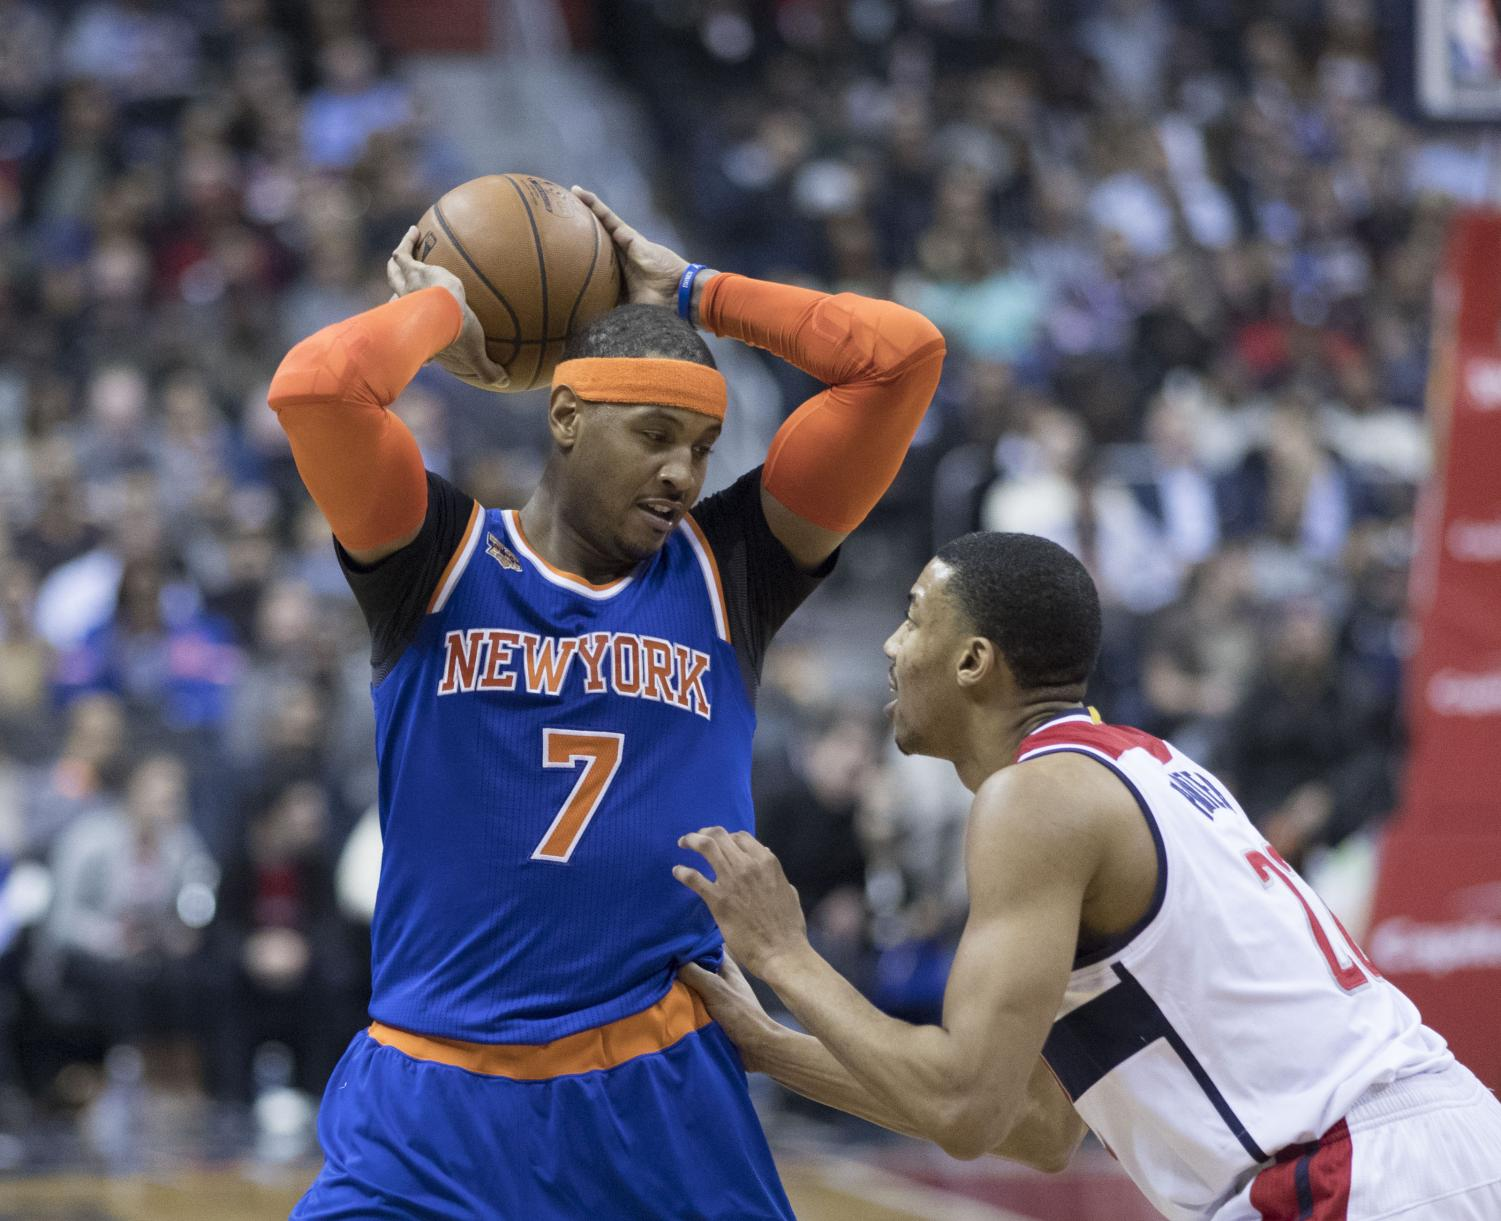 Carmelo Anthony on his old team, the New York Knicks, playing against the Washington Wizards on January 31st, 2017. (Photo Credit: Keith Allison via Wikimedia Commons under Creative Commons License)